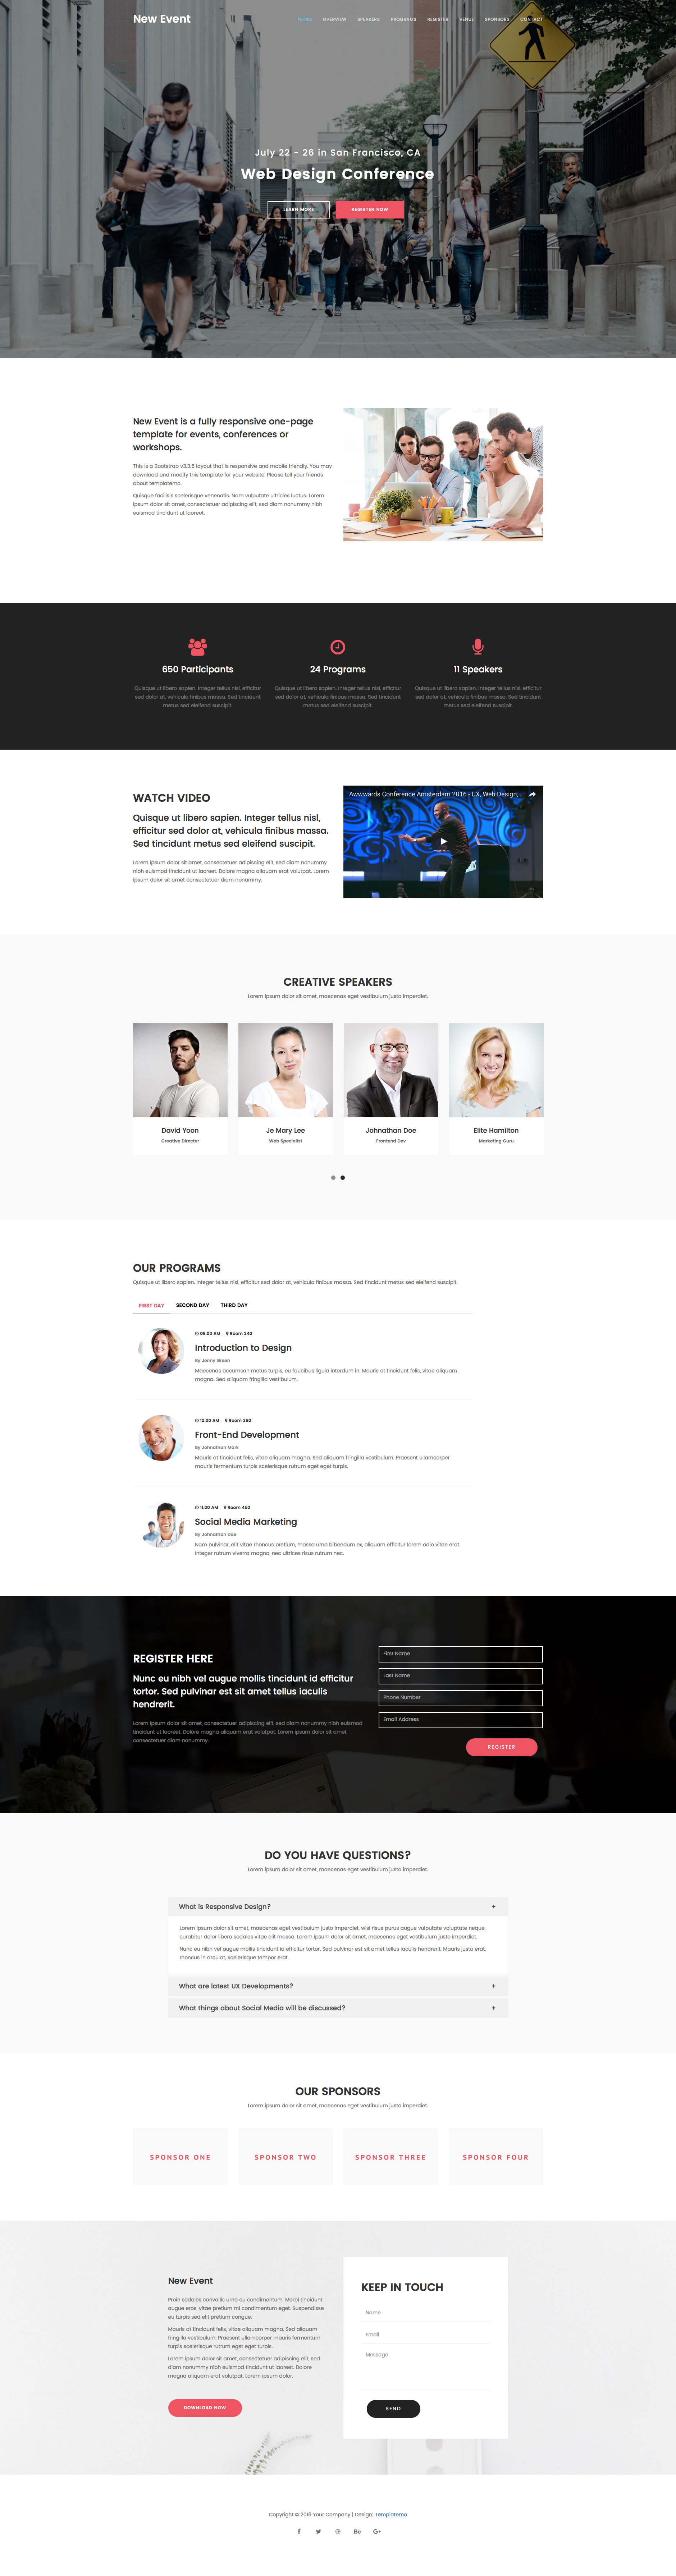 uo forever templates - event template html gallery template design ideas